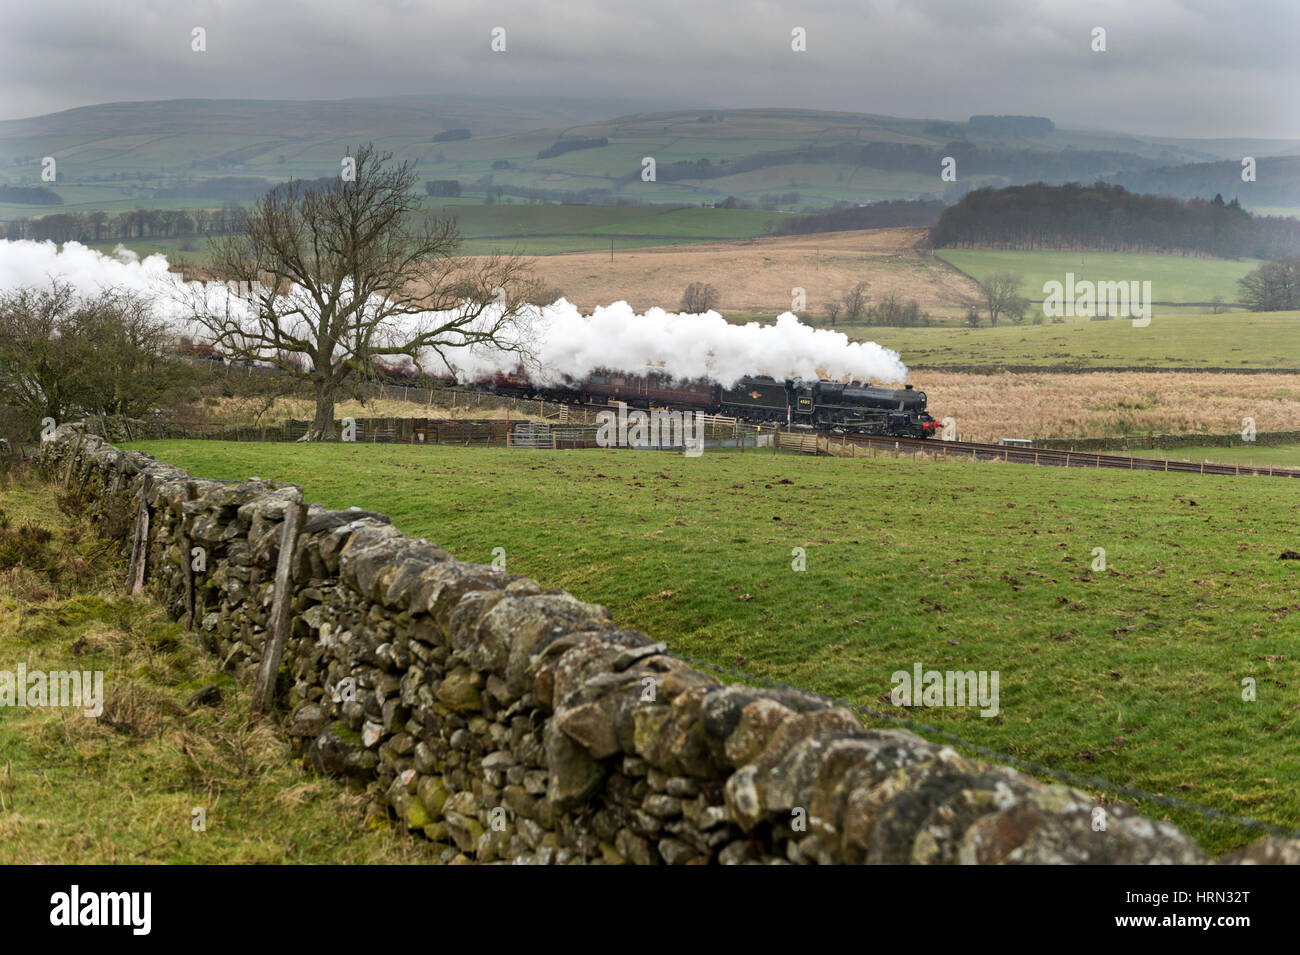 Yorkshire Dales, UK. 3rd Mar, 2017. Under a raincloud a Black 5 steam locomotive No.45212 on a test run from Steamtown; - Stock Image